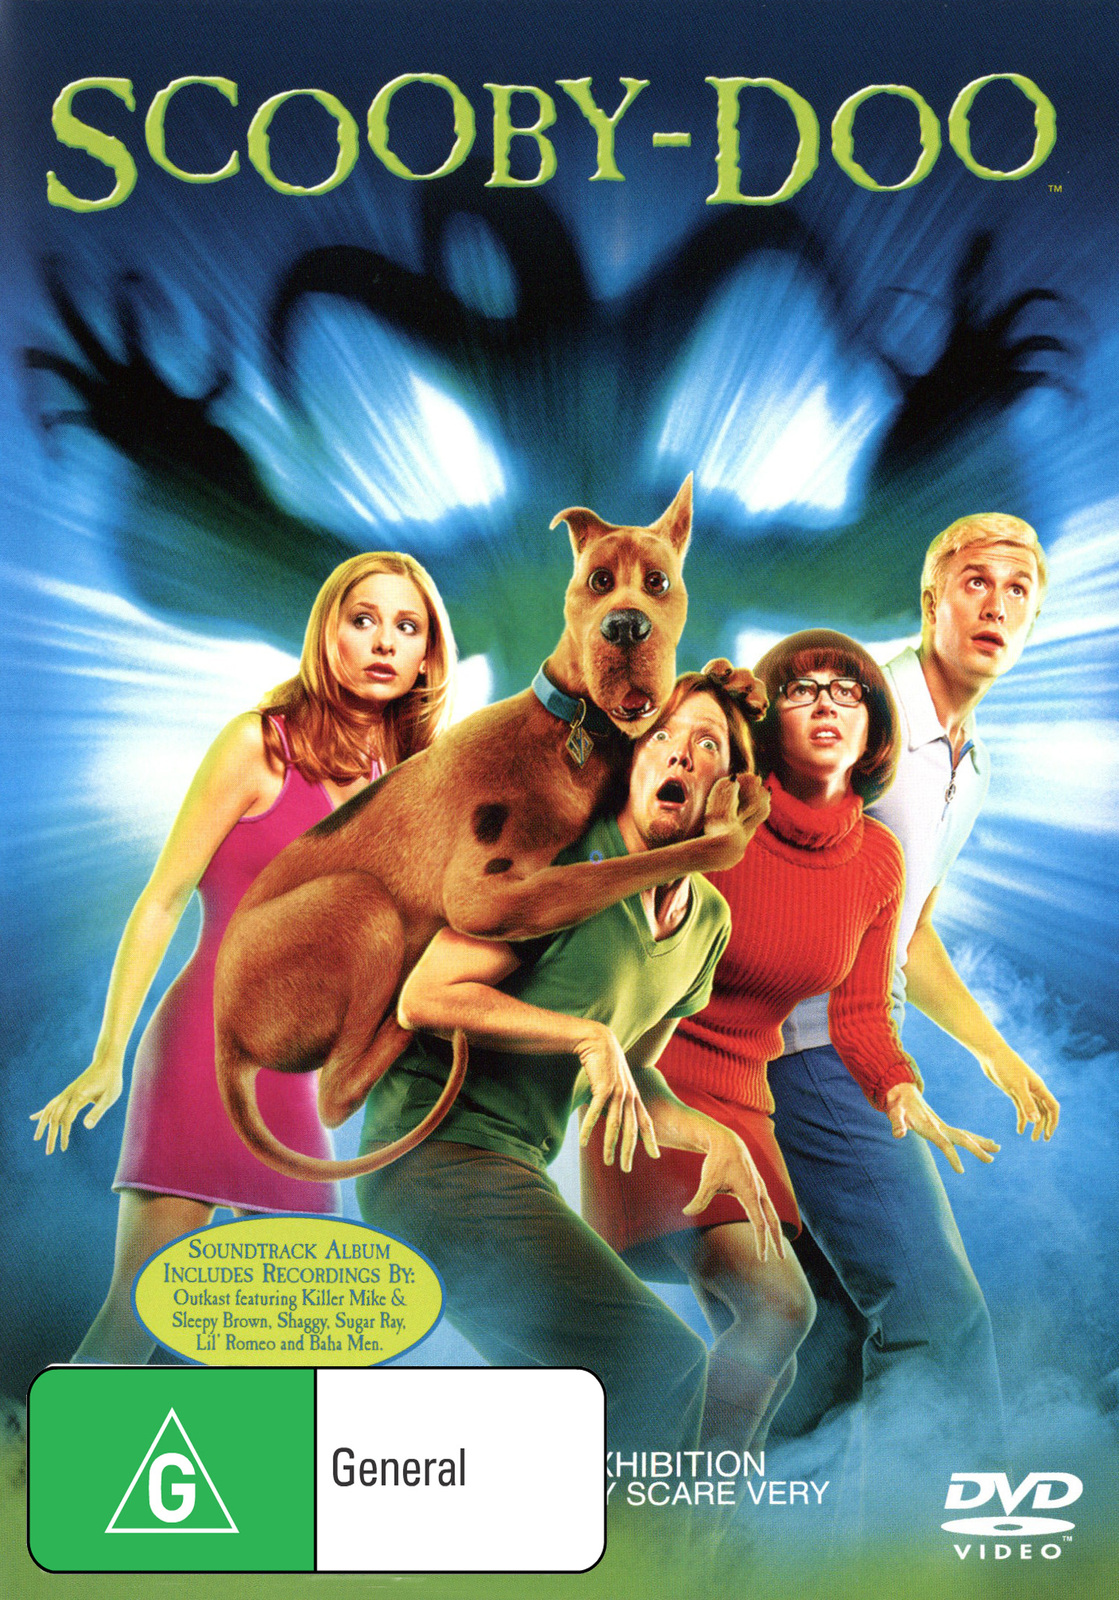 Scooby Doo! The Movie on DVD image